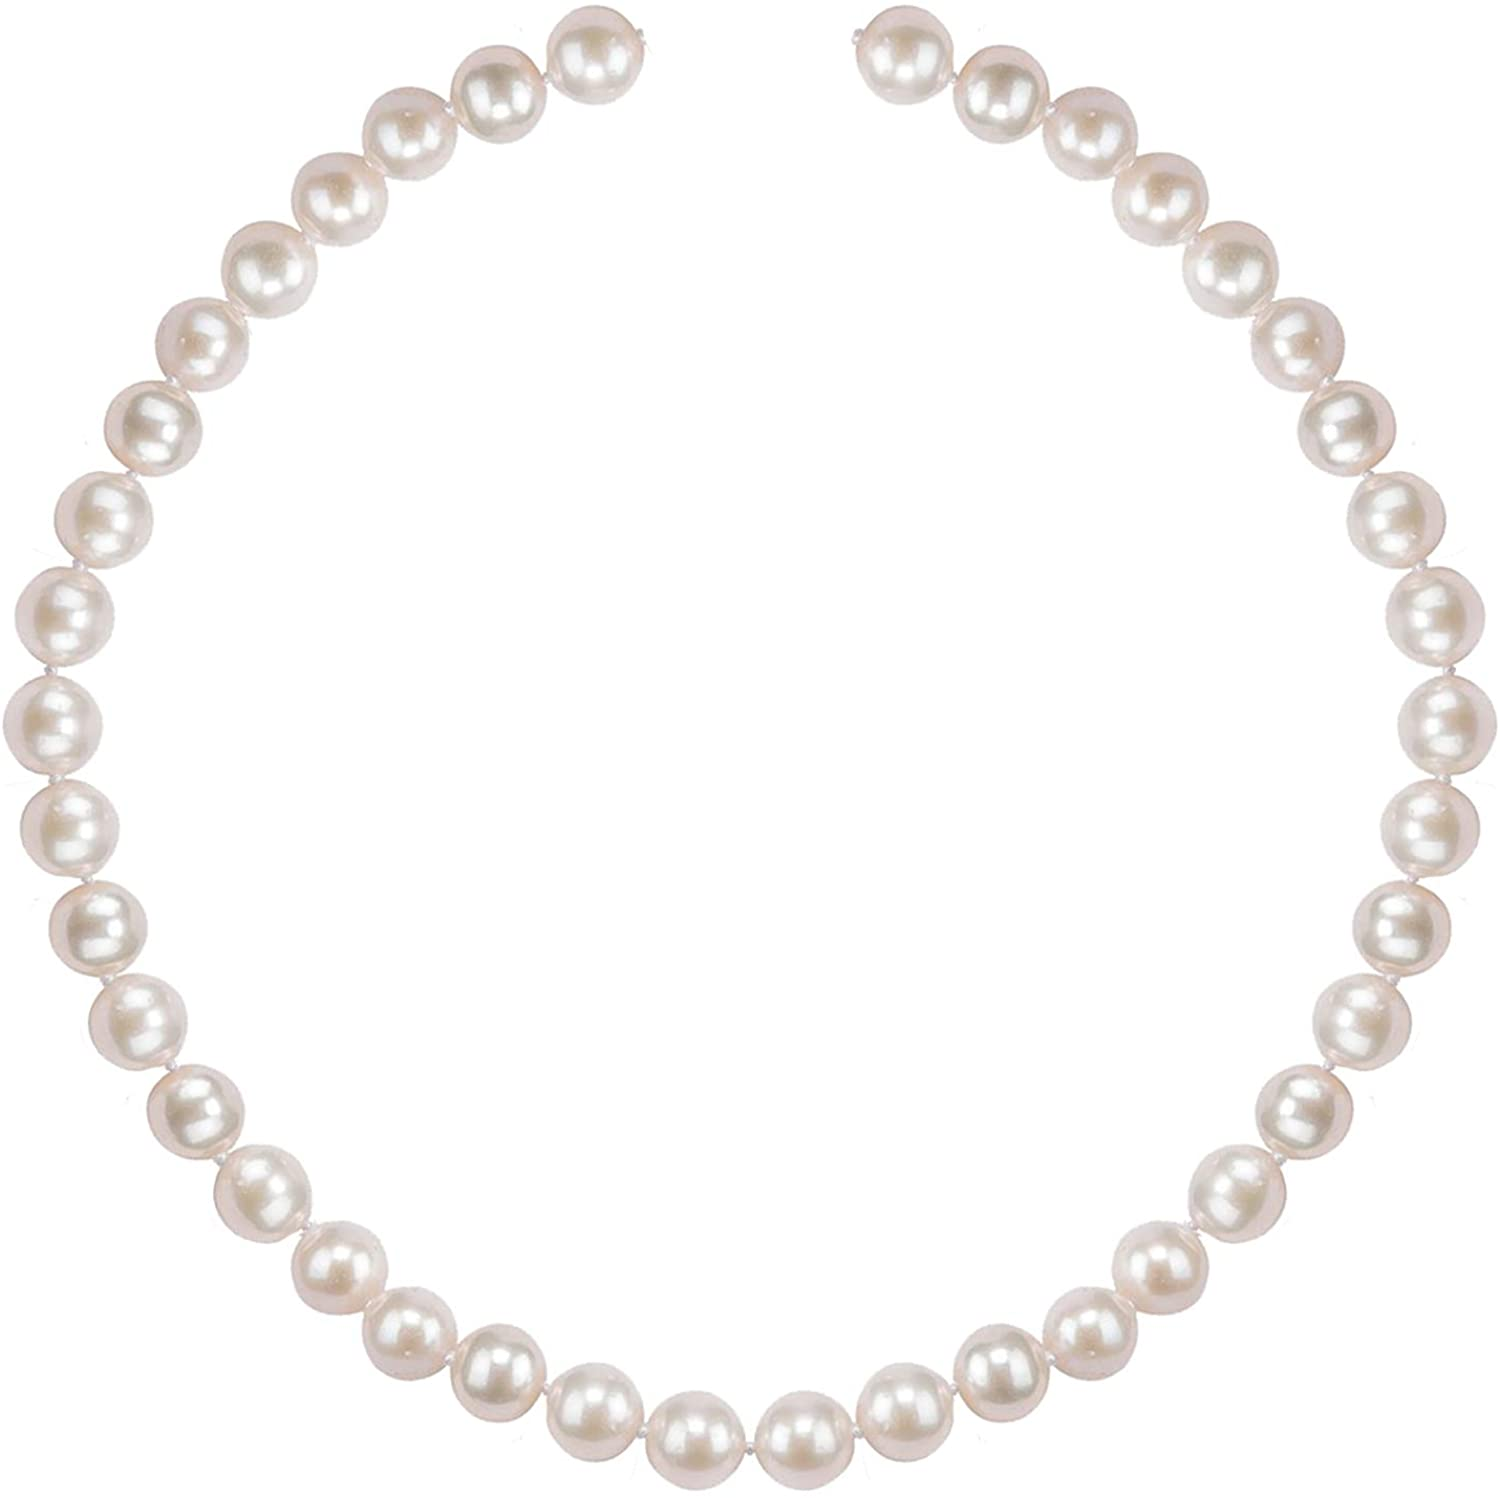 PAVOI Handpicked Freshwater Cultured Pearl Necklace Strand - High Luster White